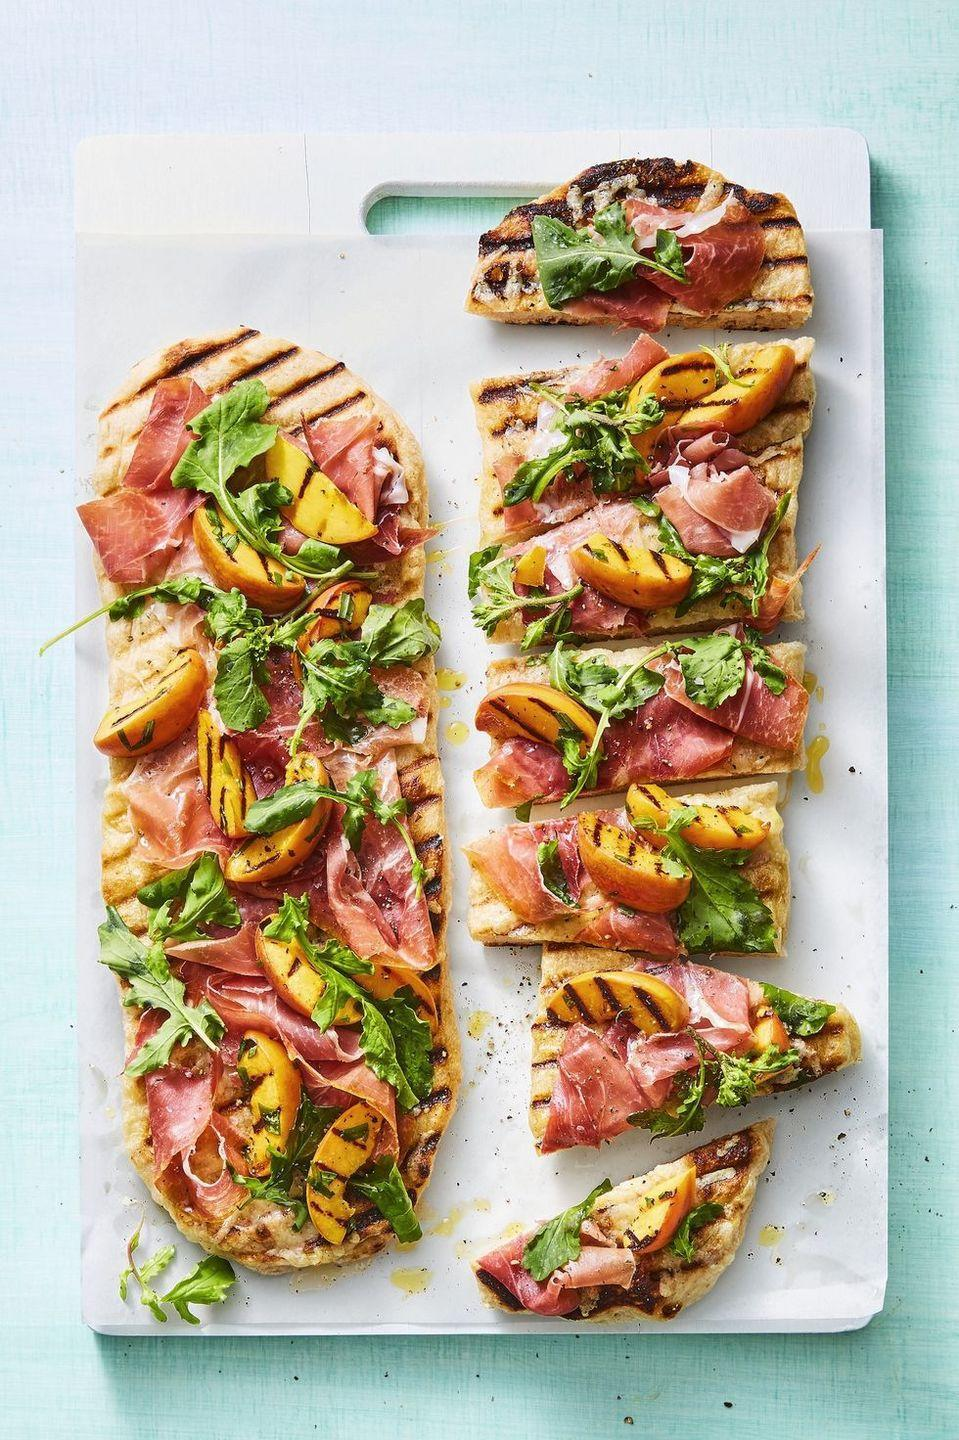 """<p>Who knew everything you needed to make your pizzas taste wood-fired was already in your backyard? Fire up your grill to give these flatbreads a beautiful char.</p><p><em><a href=""""https://www.goodhousekeeping.com/food-recipes/a28468076/peach-and-prosciutto-flatbreads-recipe/"""" rel=""""nofollow noopener"""" target=""""_blank"""" data-ylk=""""slk:Get the recipe for Peach and Prosciutto Flatbreads »"""" class=""""link rapid-noclick-resp"""">Get the recipe for Peach and Prosciutto Flatbreads »</a></em> </p>"""